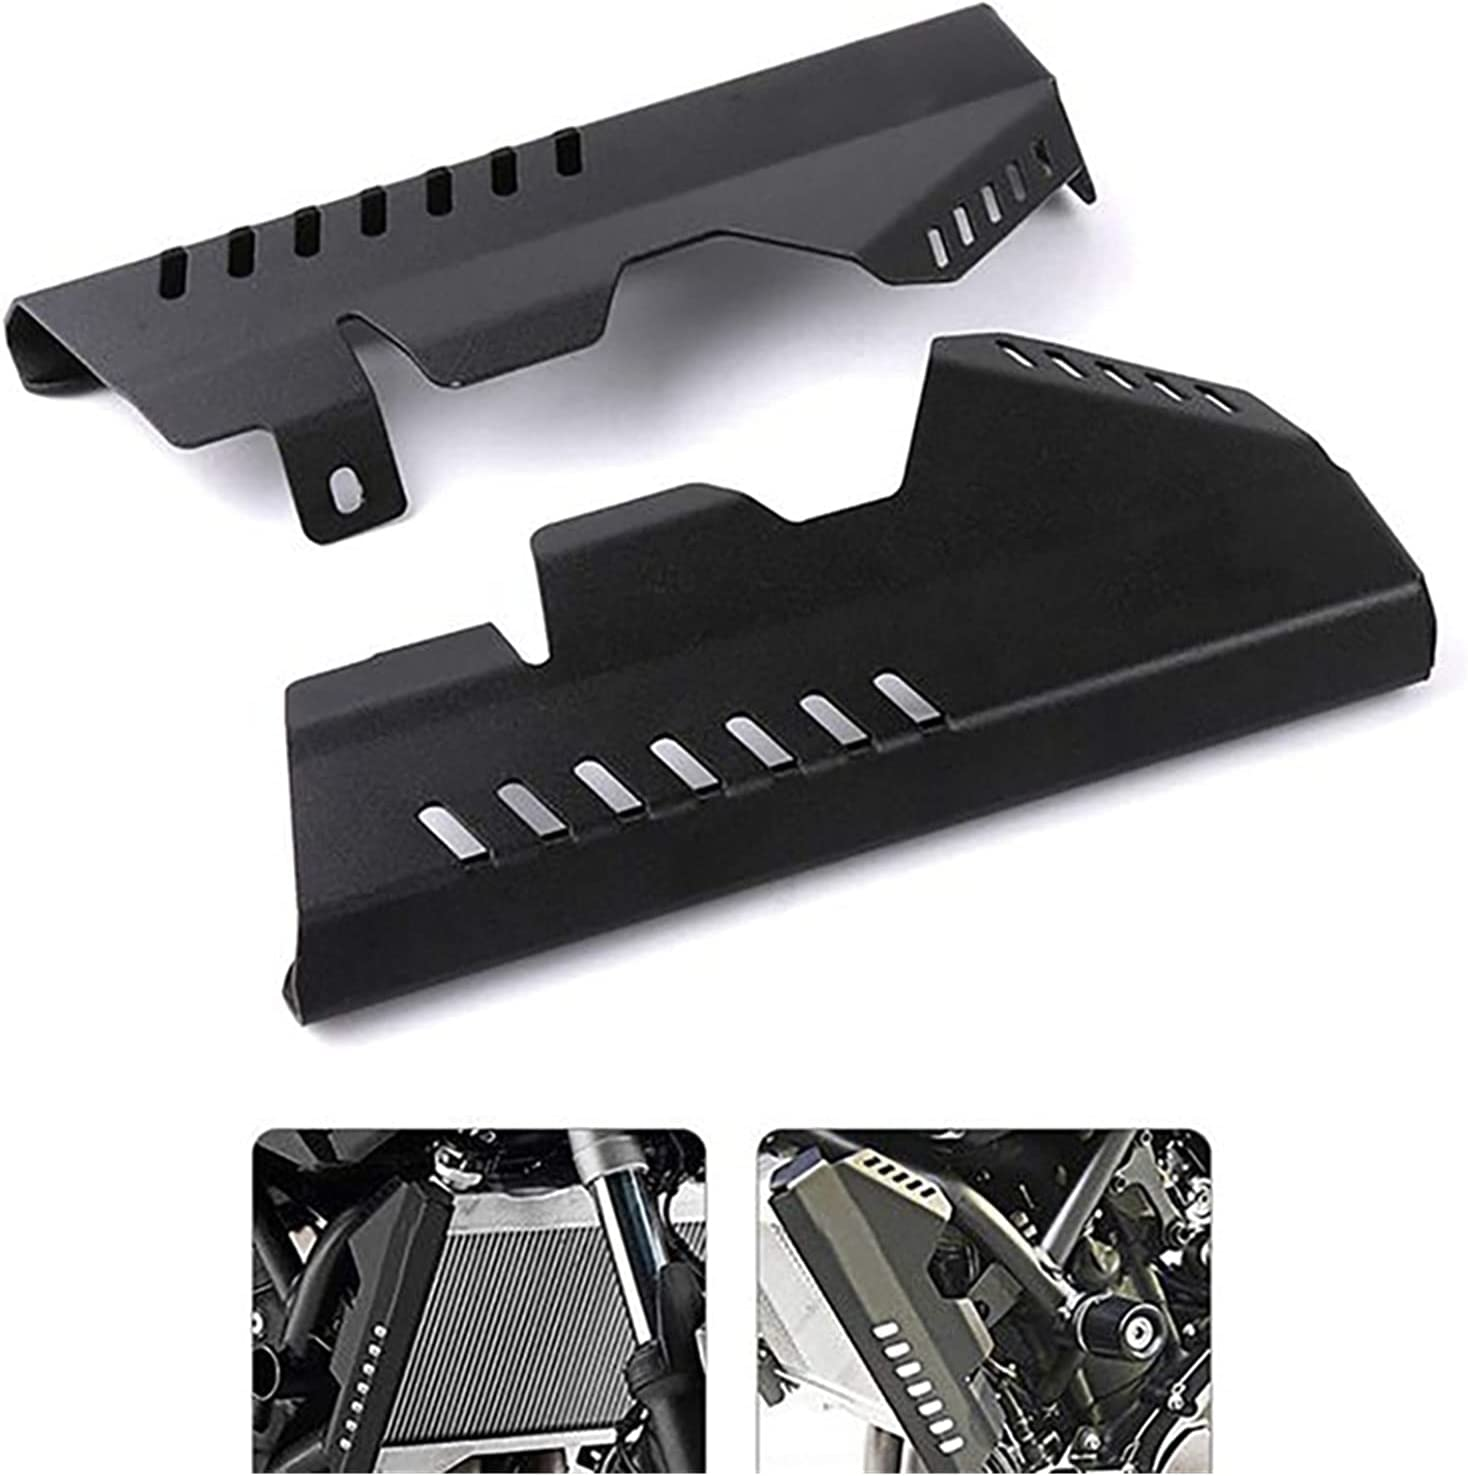 XINLIN Ruderude Motorcycle Side Radiator Grille Cover Guard Protector Fit For Yamaha MT07 MT-07 FZ MT 07 FZ07 FZ-07 2013-2017 Color : Black